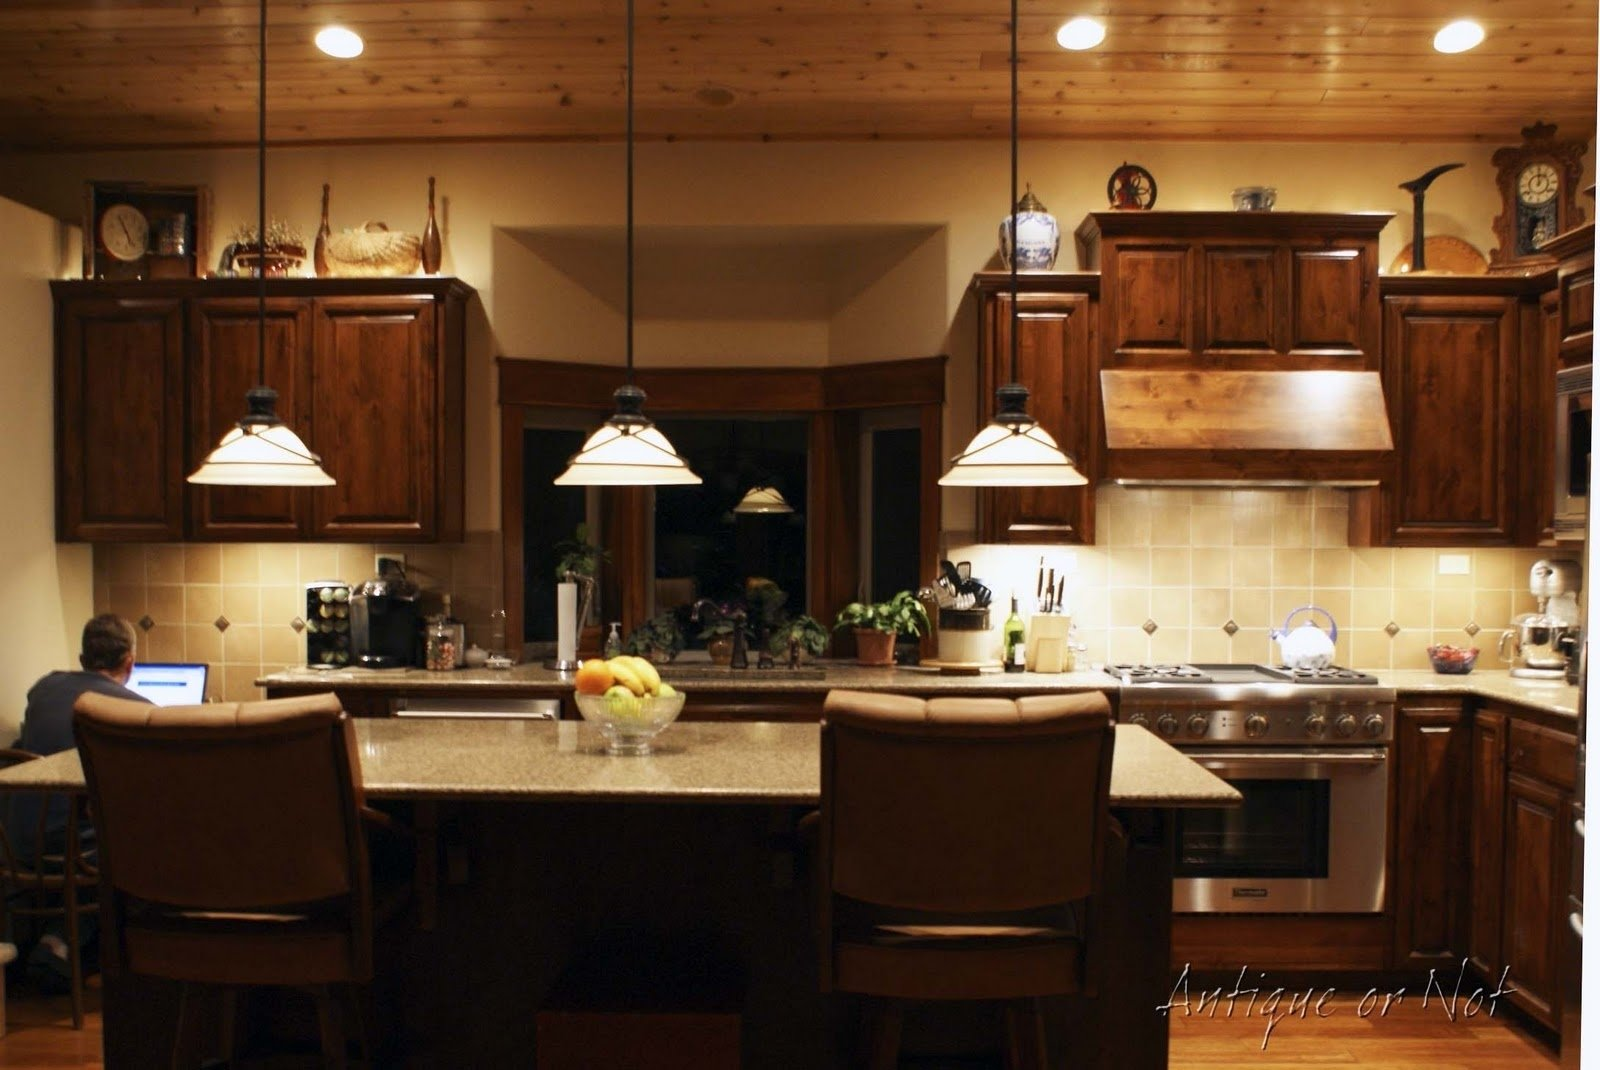 10 Cute Decorating Ideas Above Kitchen Cabinets collection in decorating ideas for above kitchen cabinets home